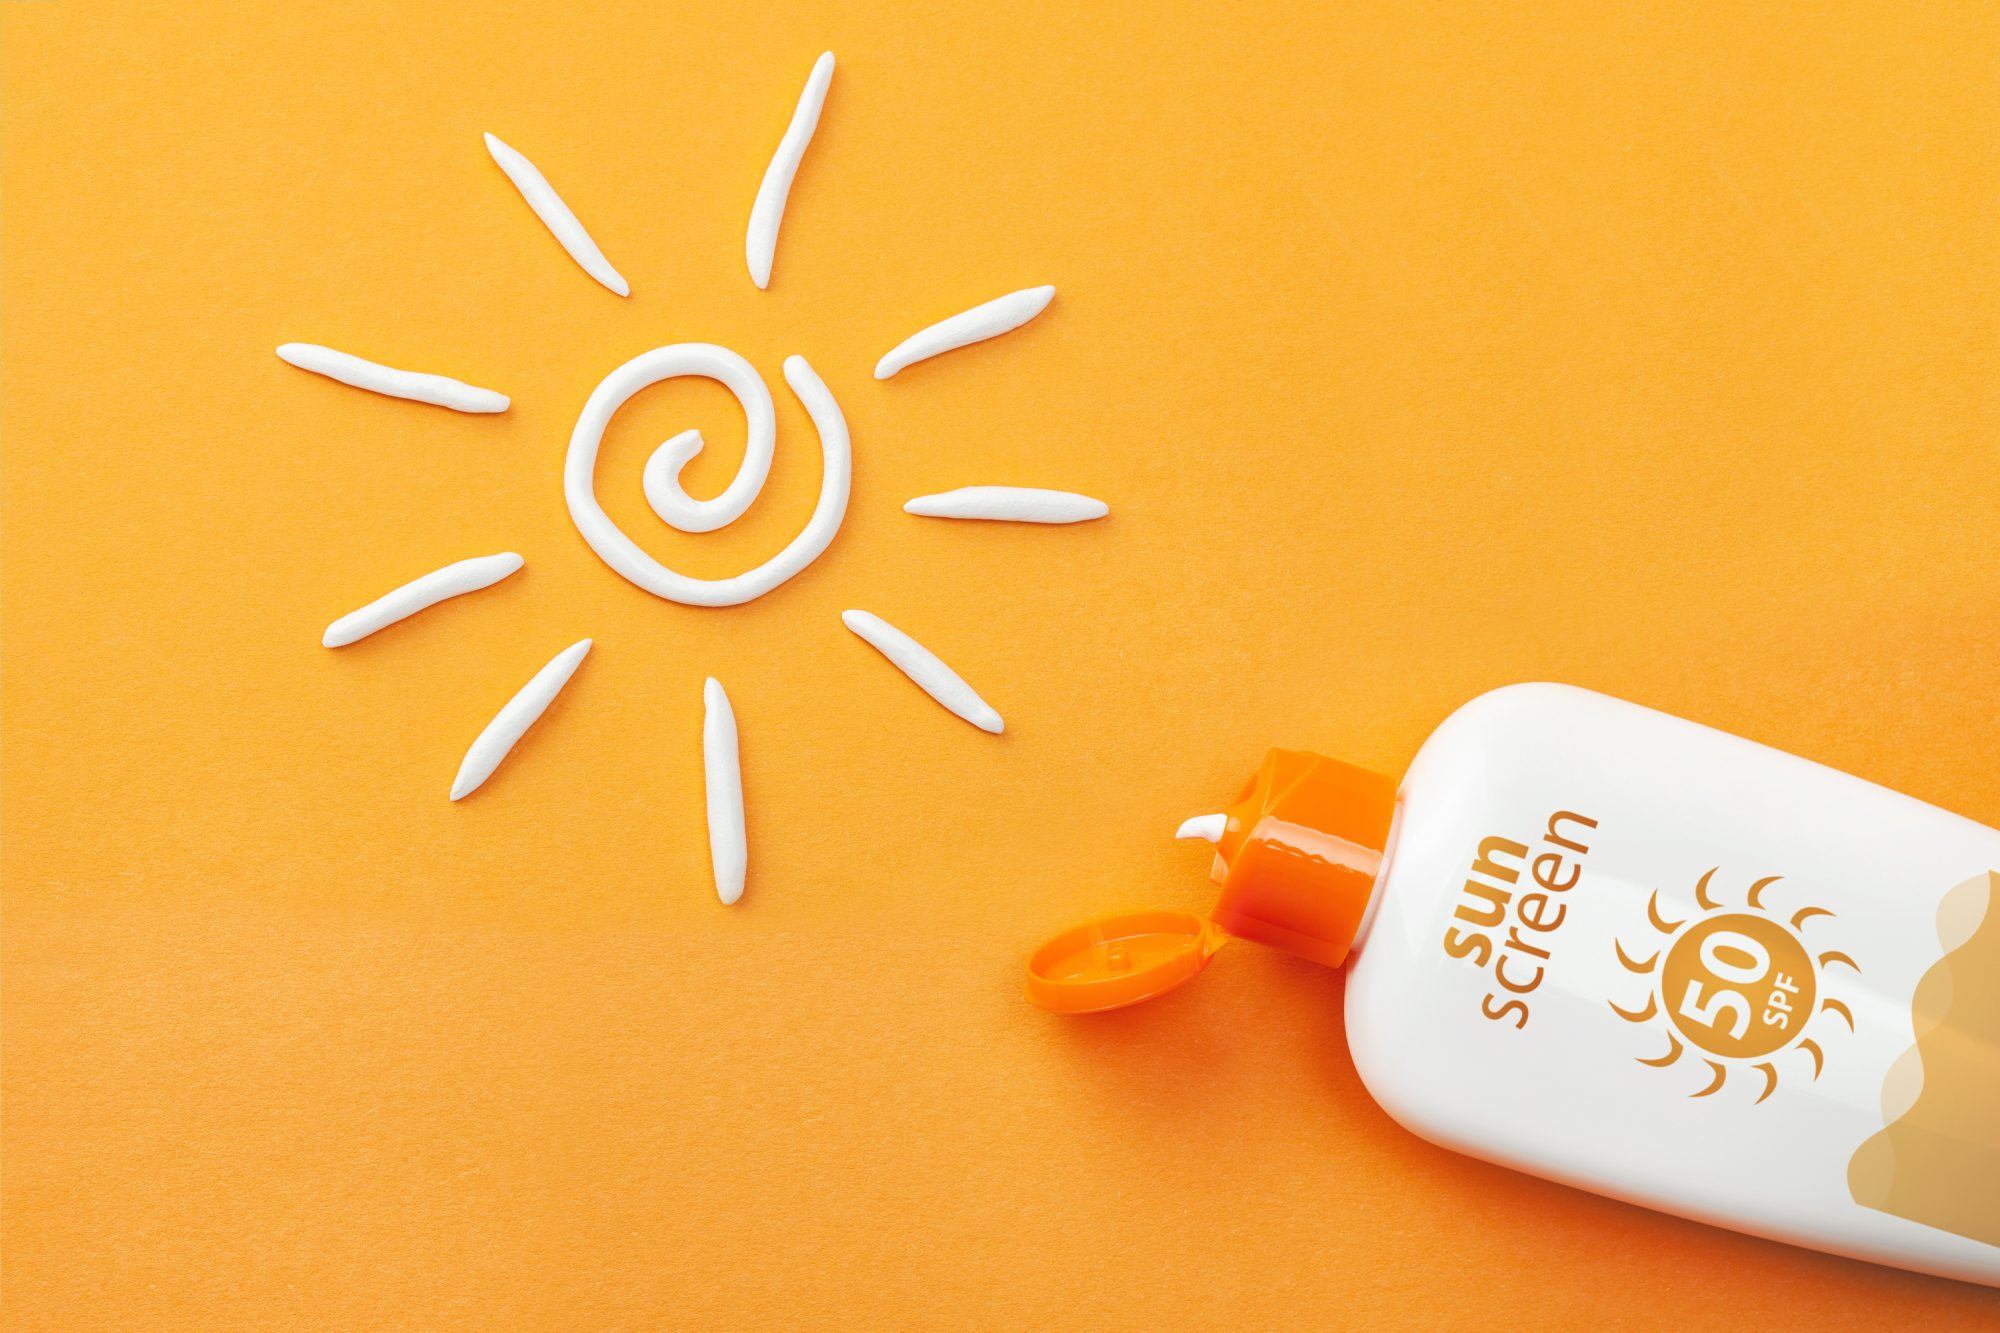 how-to-apply-sunscreen: bottle of sunscreen and lotion in shape of sun